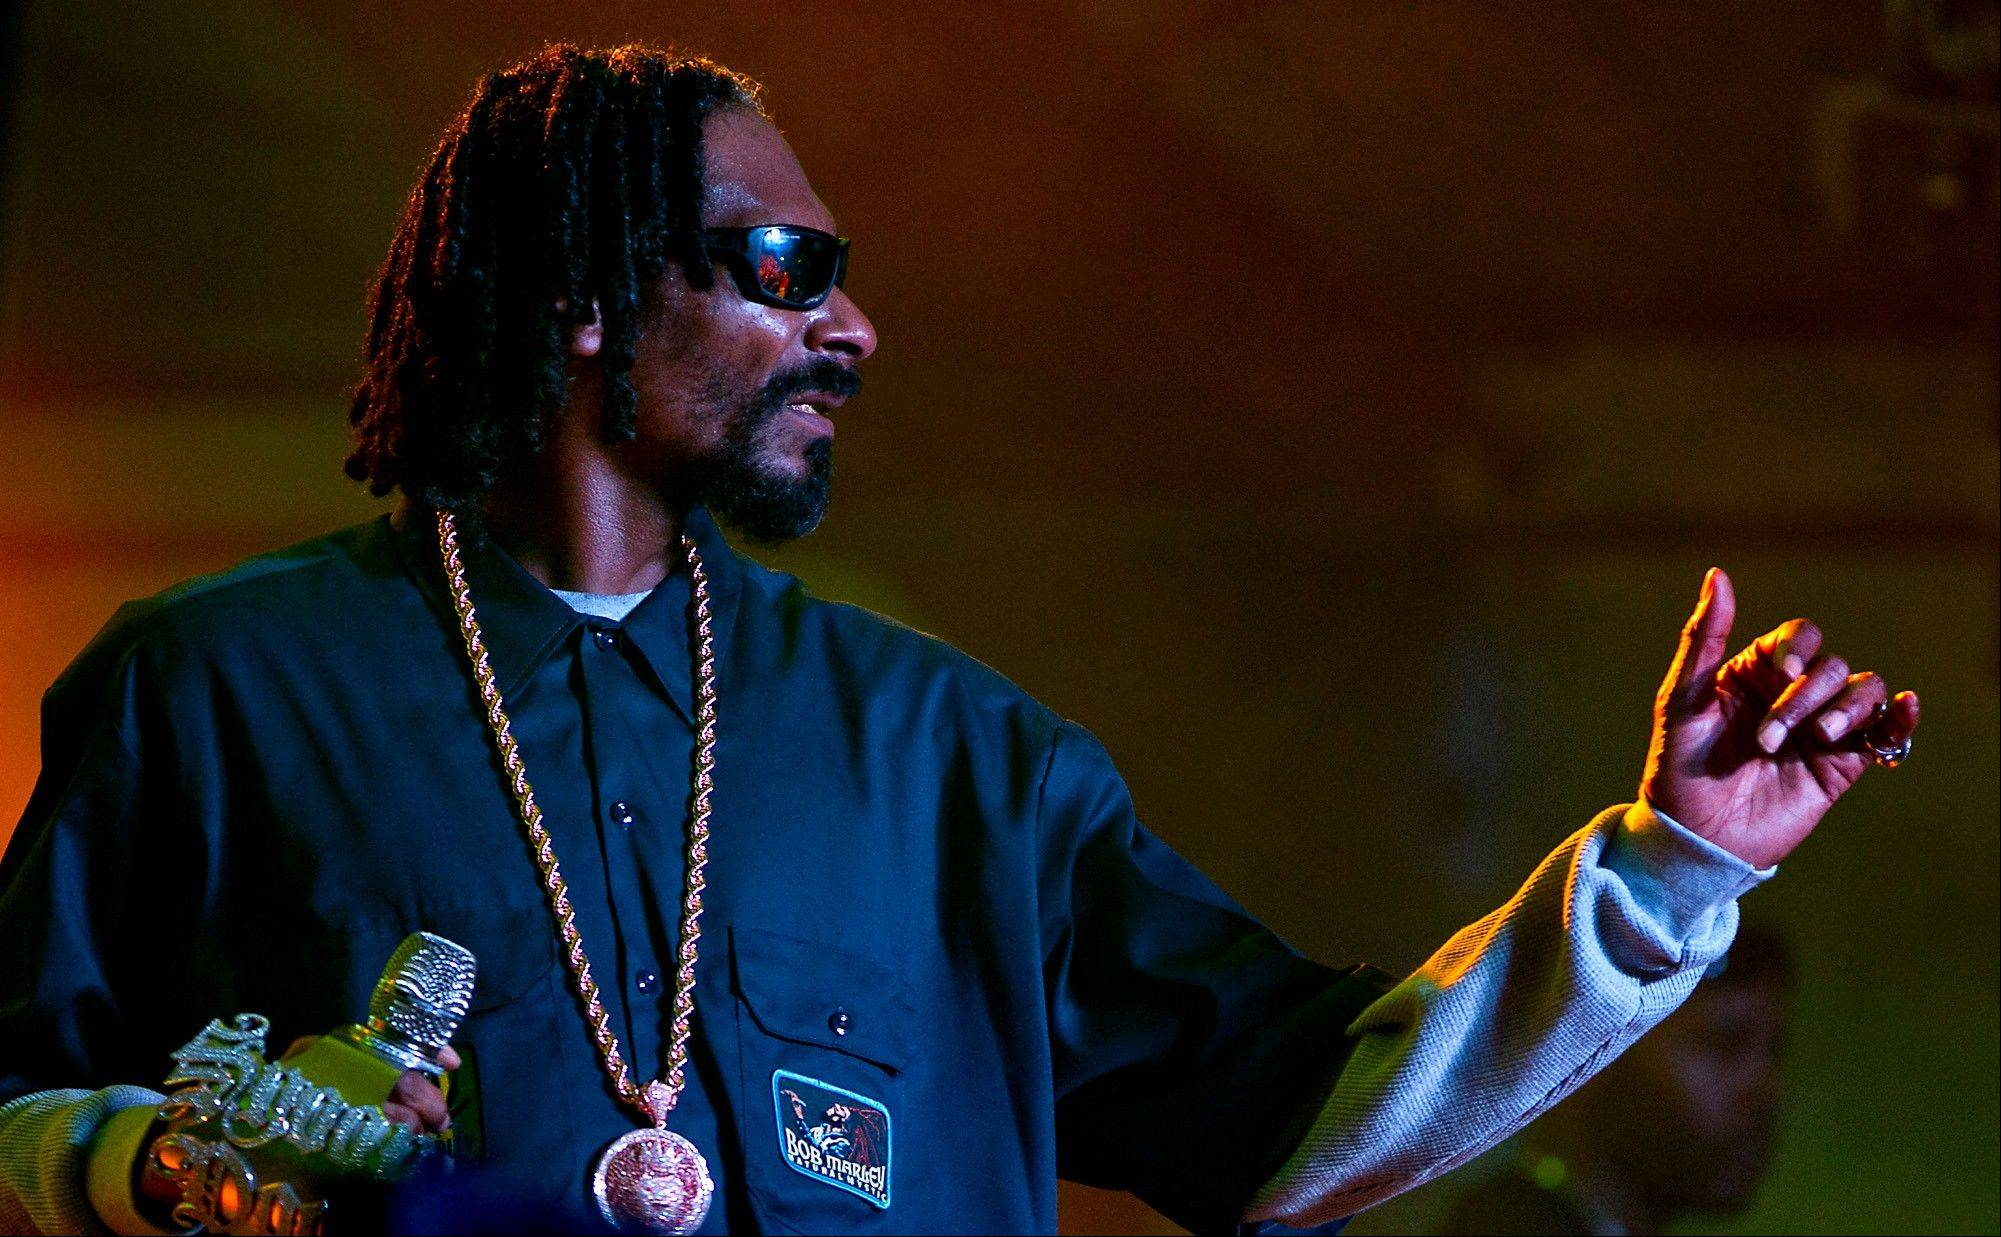 Snoop Lion, formerly Snoop Dogg, performs during Lion Fest held at Viceland during SXSW 2013 on Thursday in Austin, Texas.